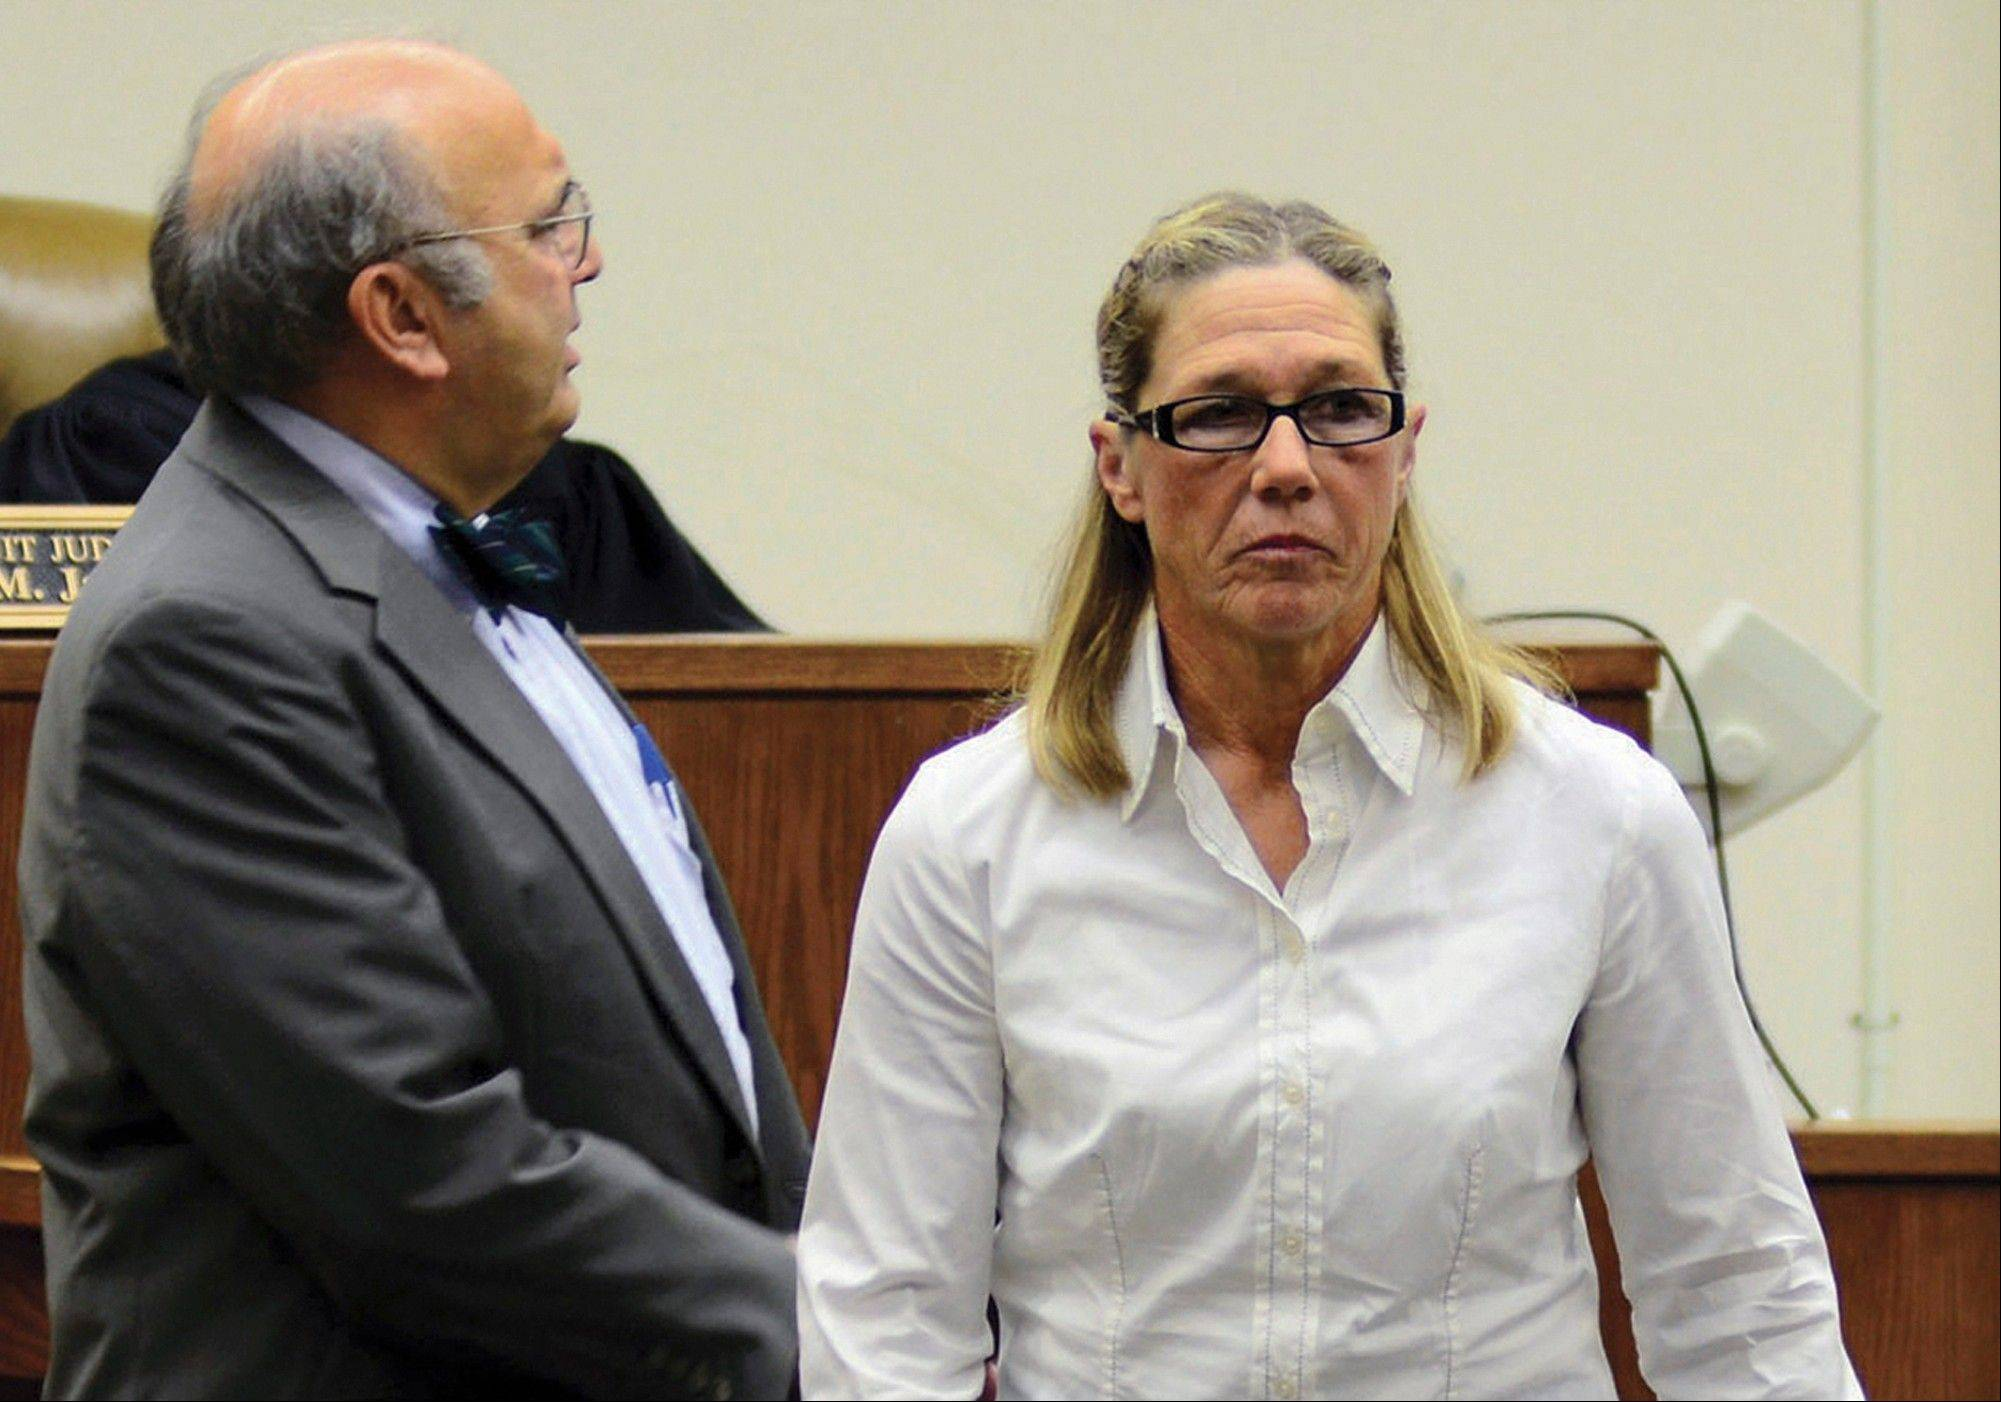 Former comptroller Rita Crundwell embezzled nearly $54 million from the town of Dixon.